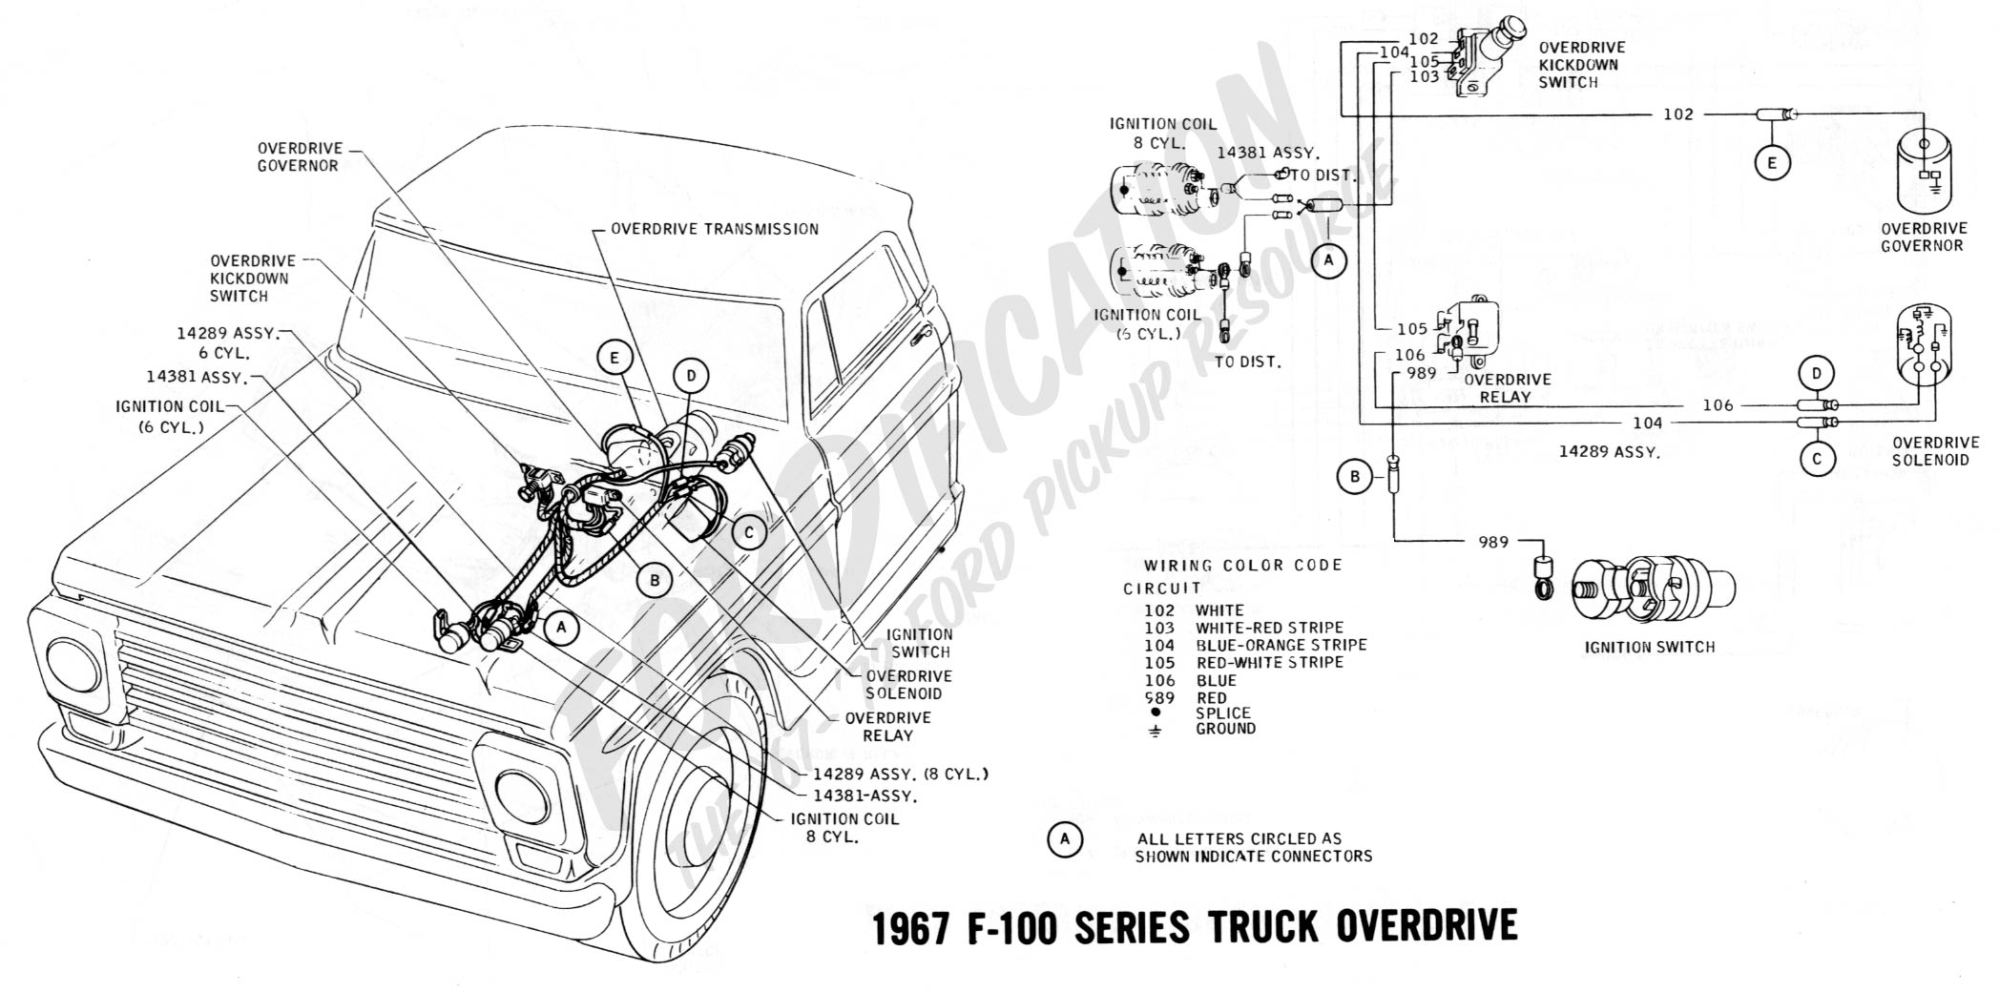 hight resolution of wiring harness 1967 ford truck 1968 wiring diagram database 1967 f 100 wiring harness